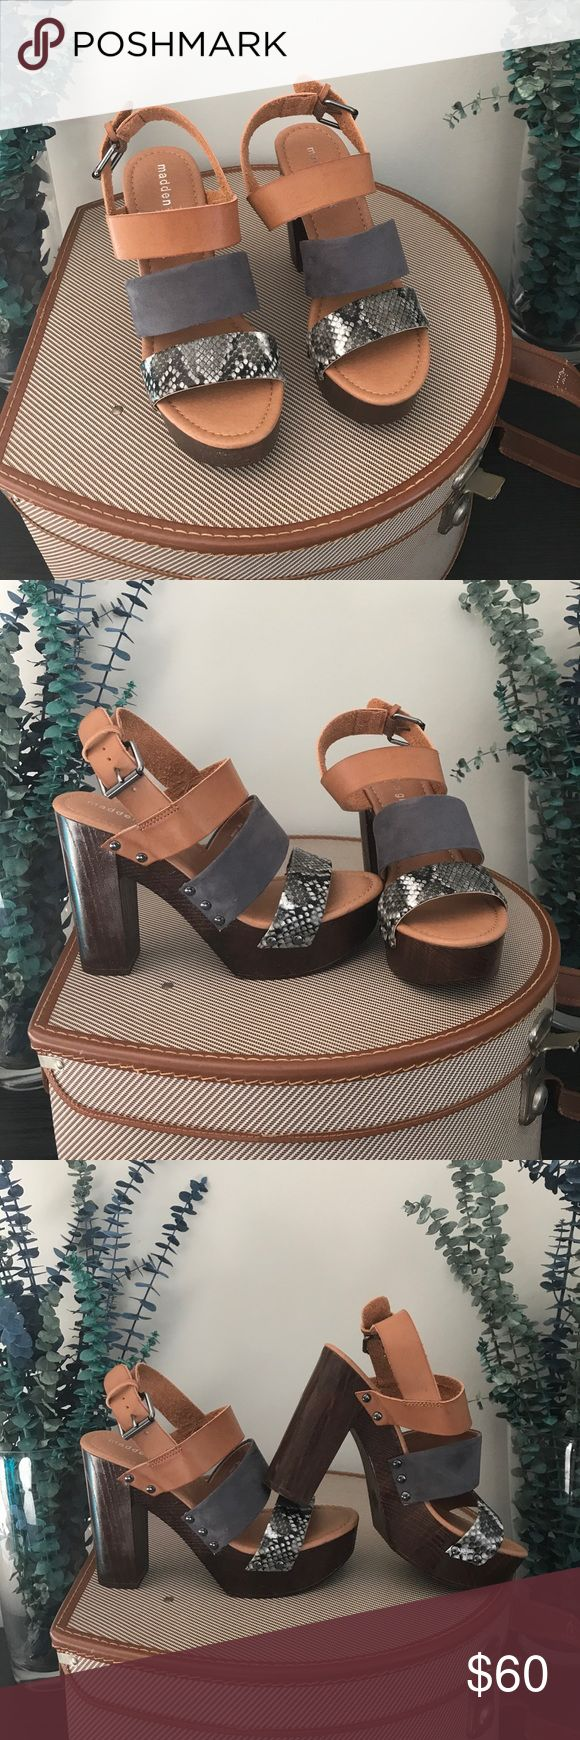 Madden Girl platform sandals These stylish designer shoes are looking for a new home, this beauty of brown , Grey and brown heels make this a must have size 8, brand new never wear Madden Girl Shoes Platforms